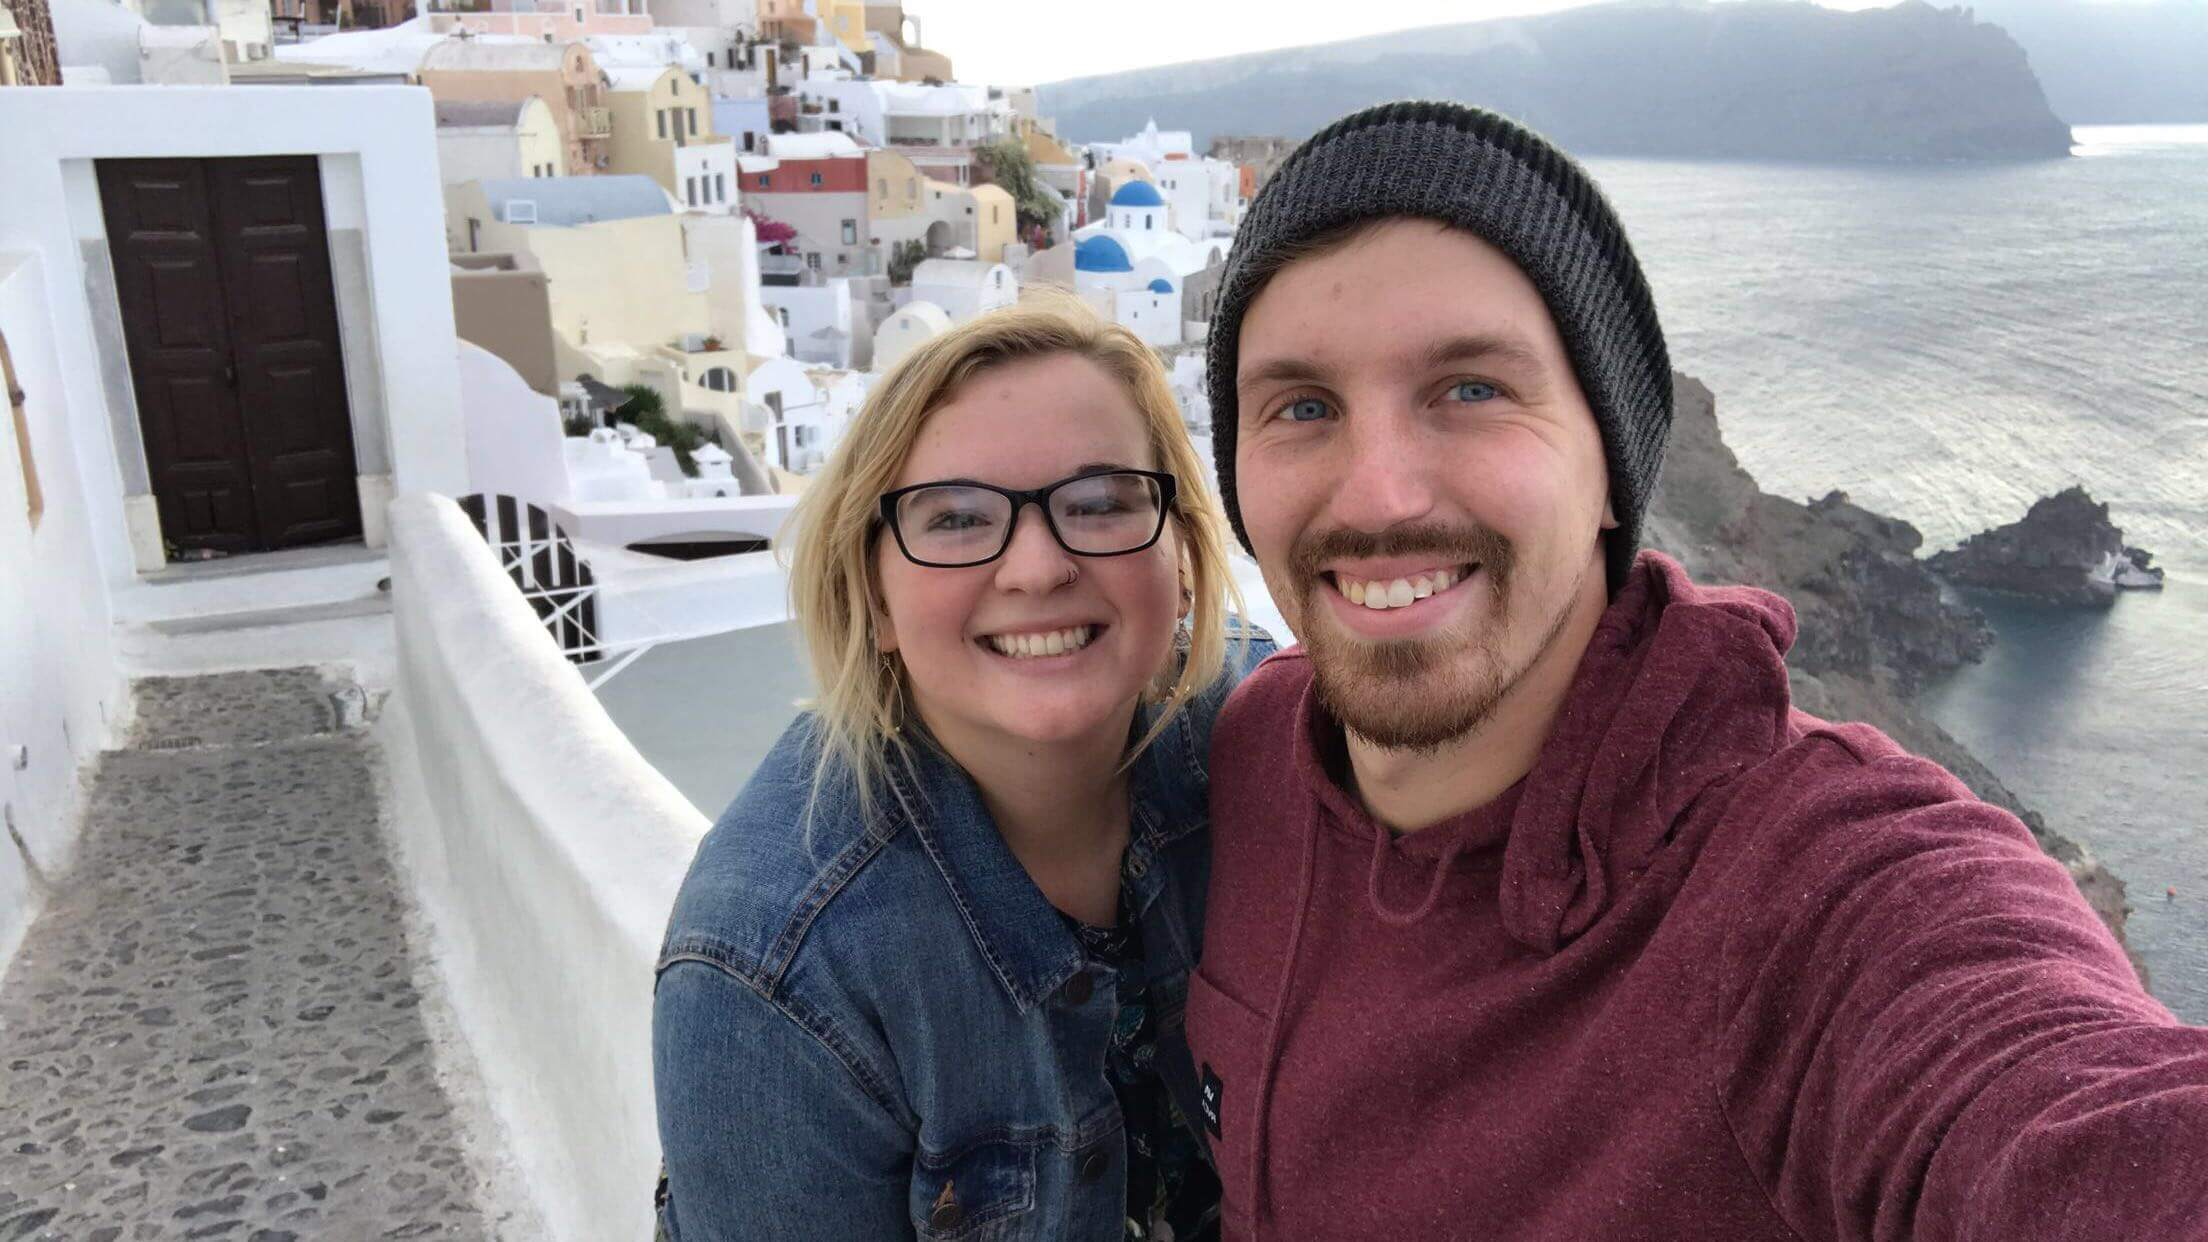 4dbdbed6fcd I started travel hacking last year before I got engaged. I knew I wanted to  plan a great honeymoon for my now wife